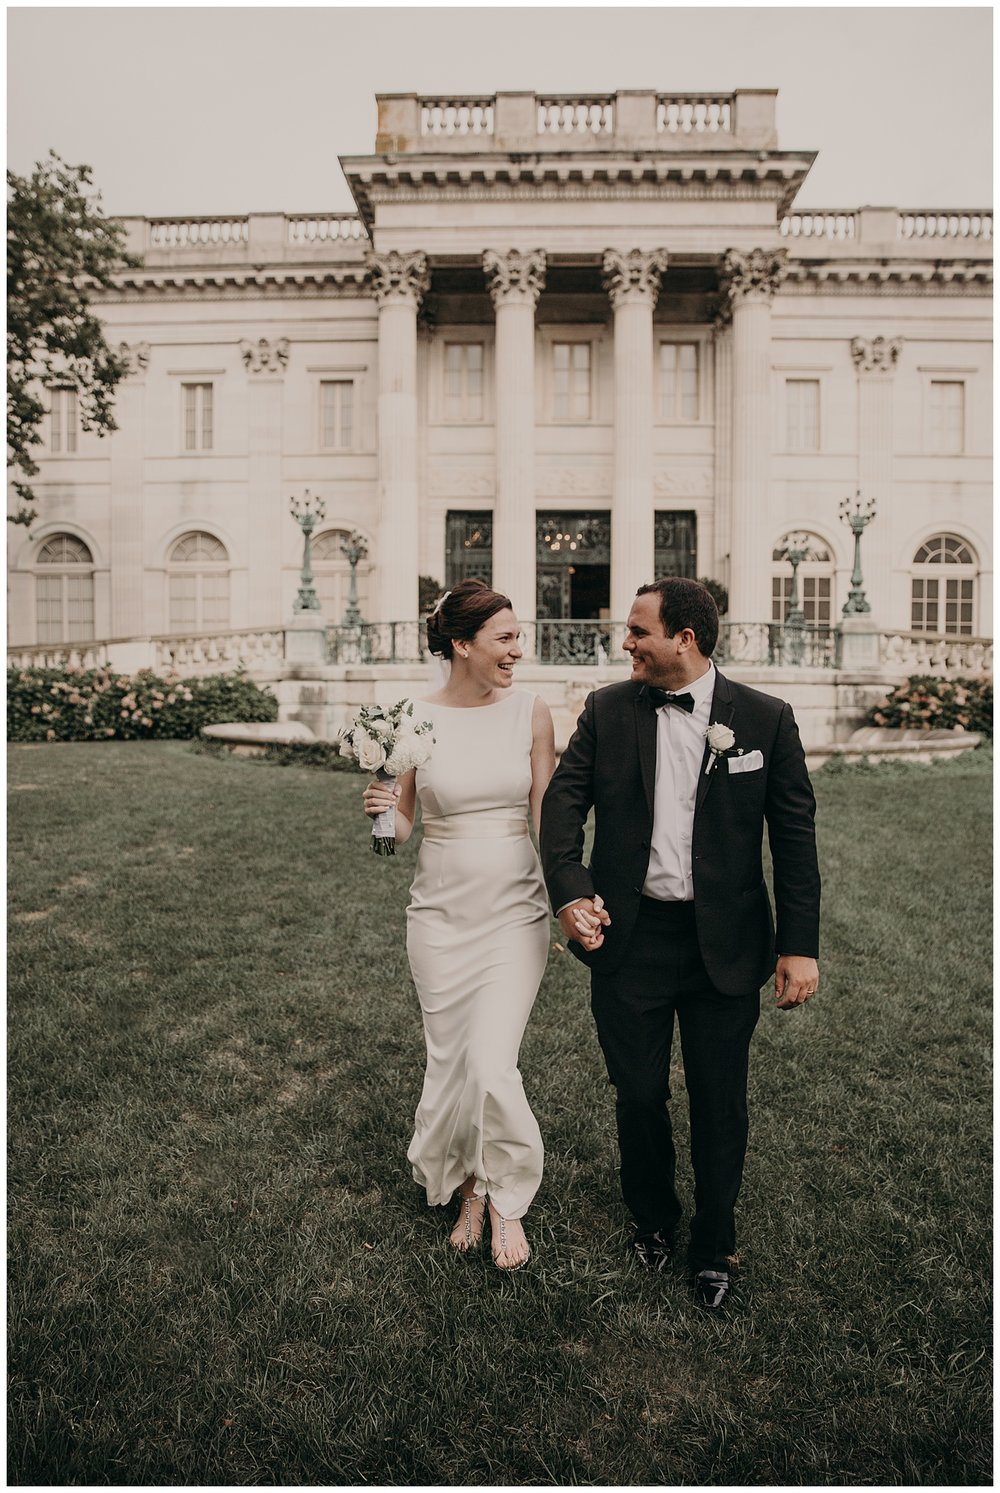 Mike_Kelly_Hotel_Viking_Newport_Rhode_Island_Wedding_015.jpeg